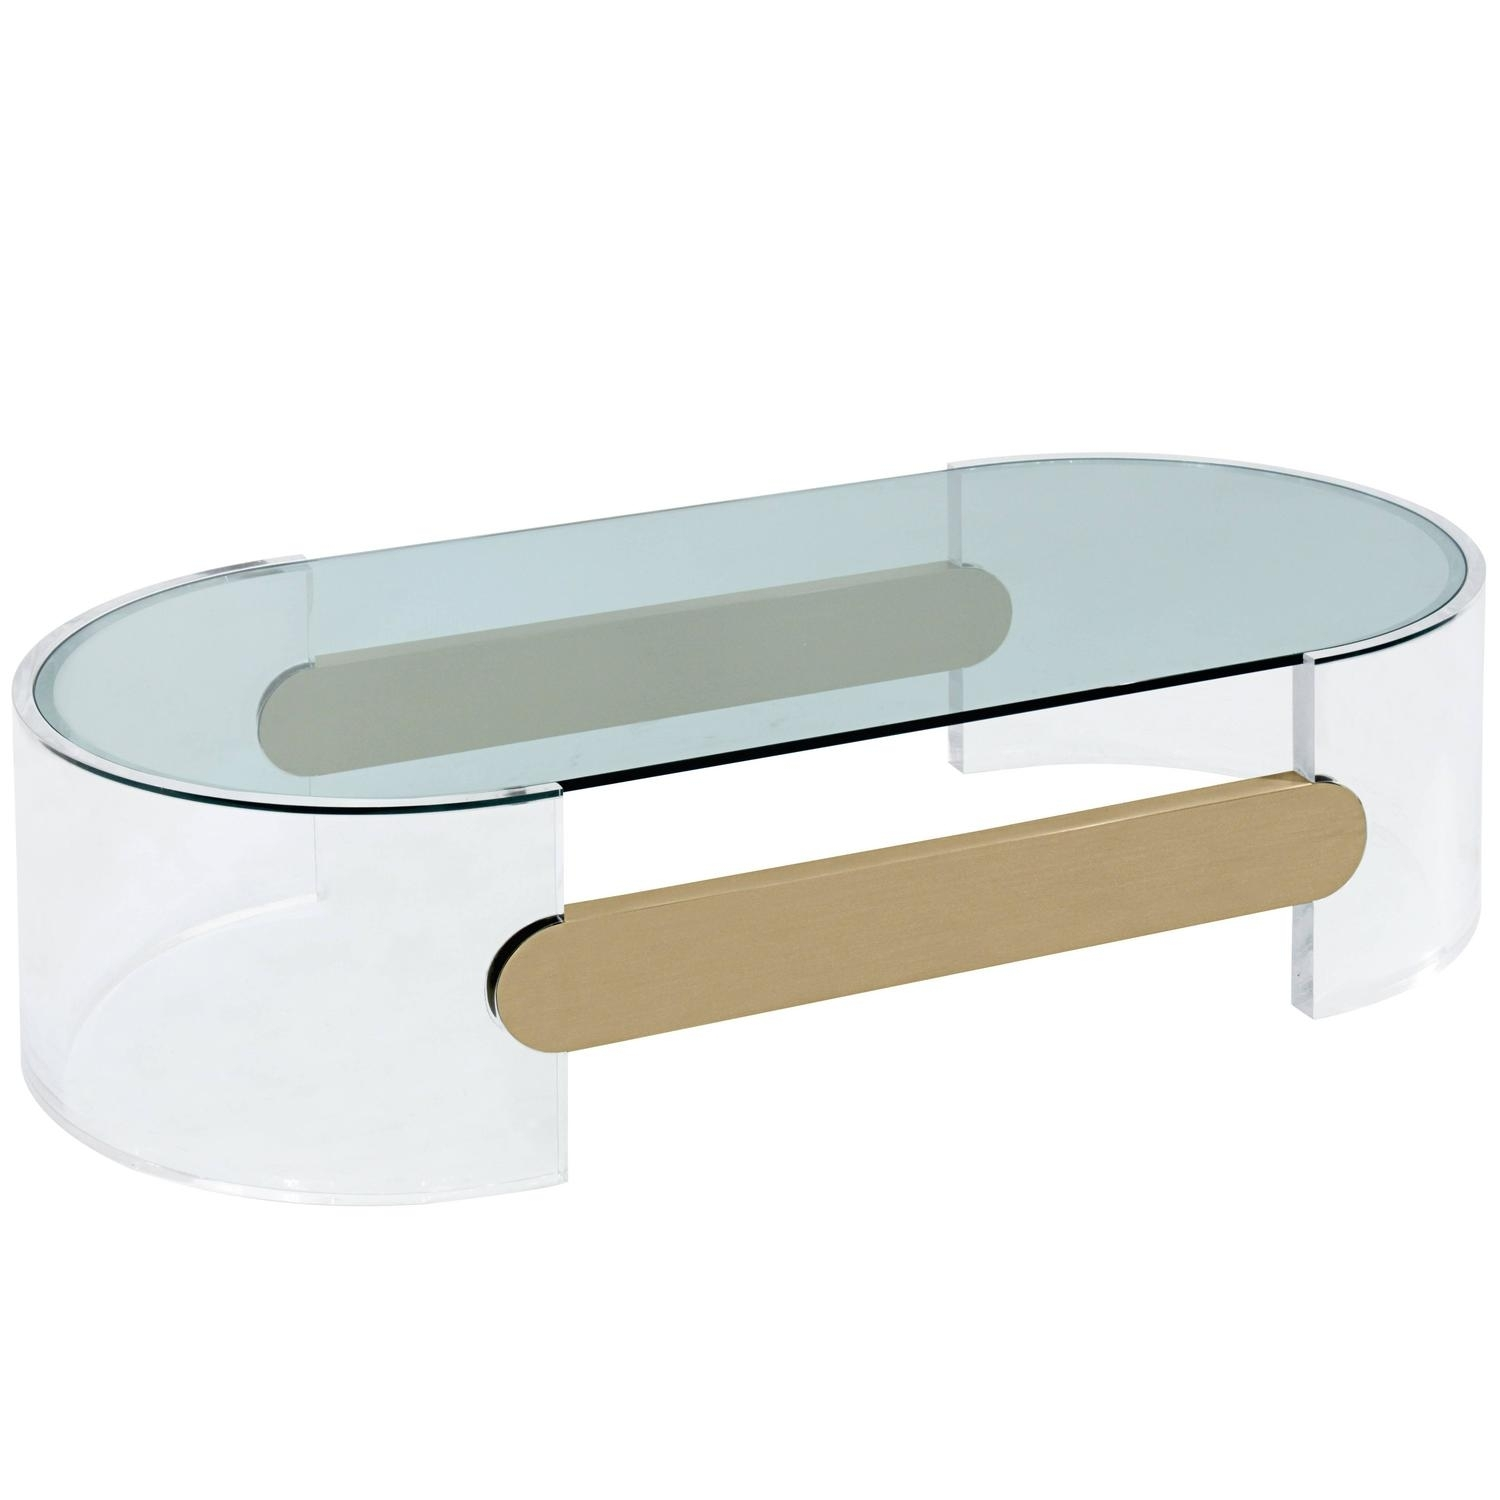 Coffee Table In Lucite With Brushed Brass Stretchersraymond throughout Acrylic & Brushed Brass Coffee Tables (Image 4 of 20)